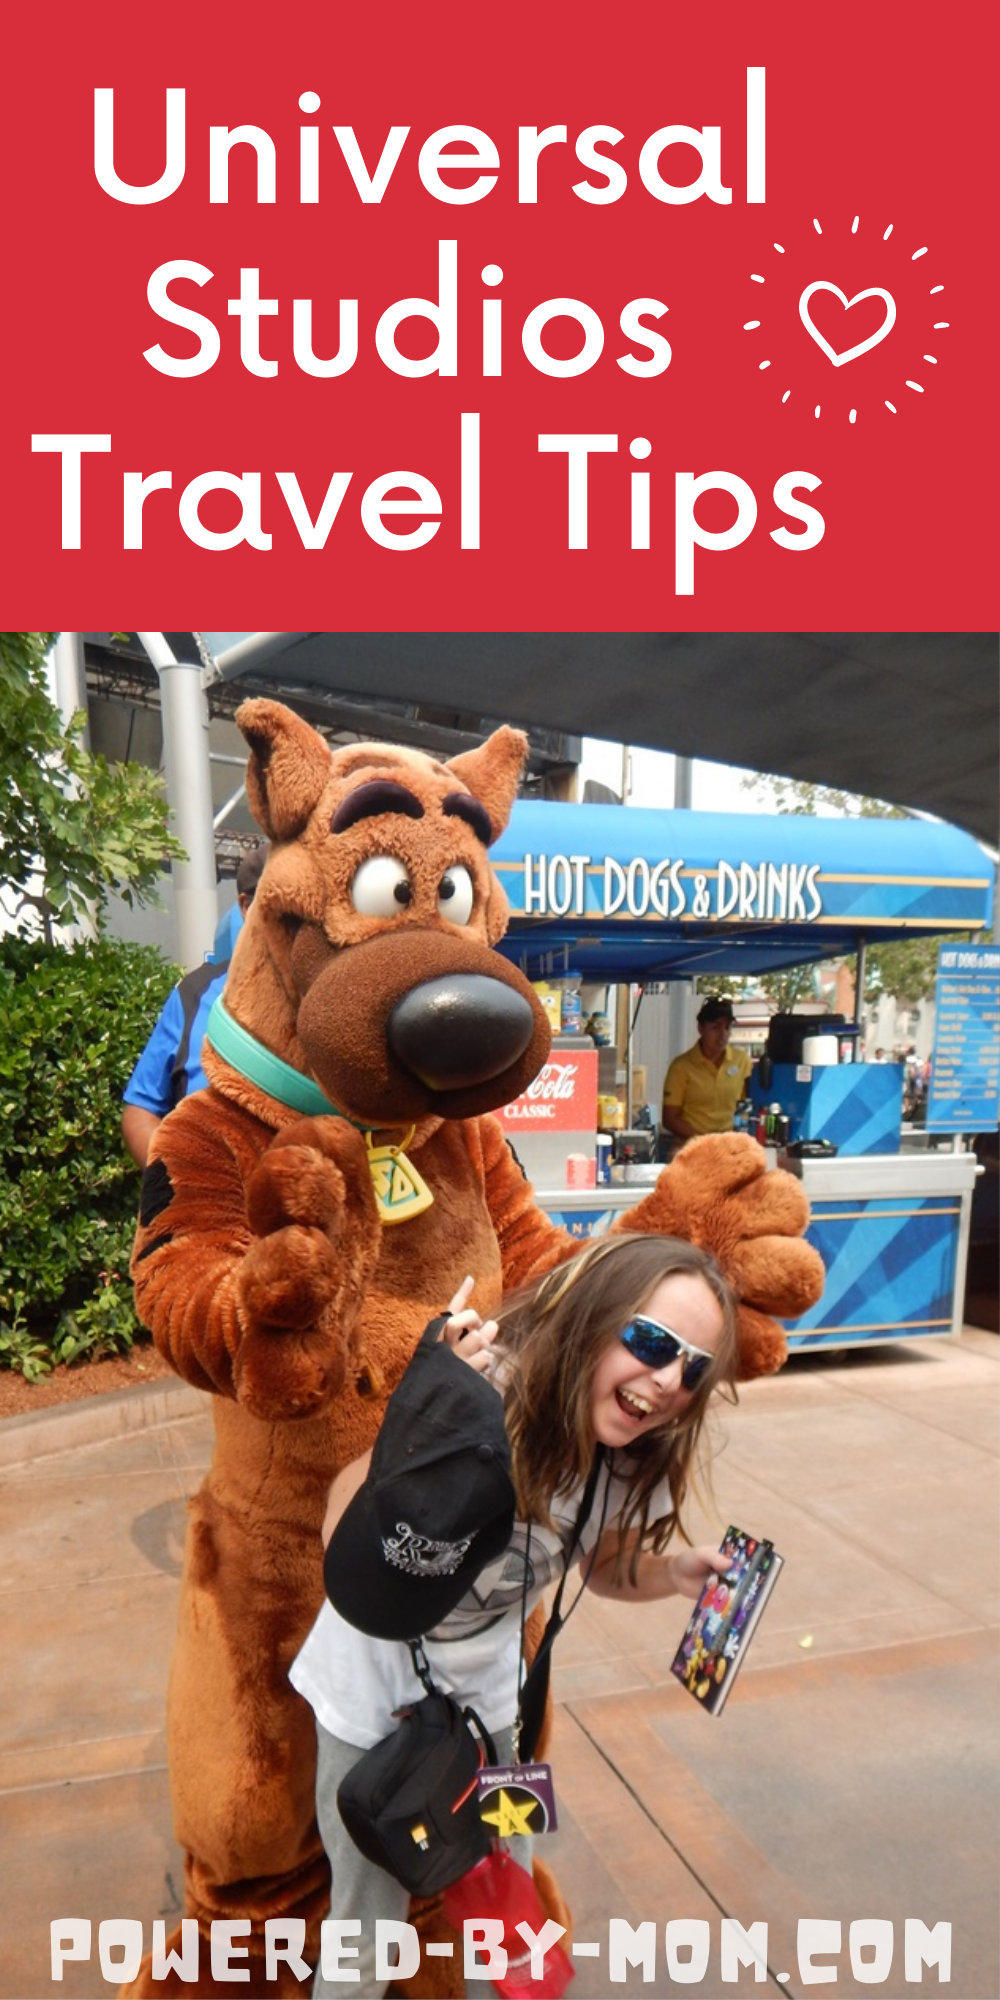 Planning a trip to Universal Studios California or in Florida? Make sure to check out our Universal Studios travel tips!